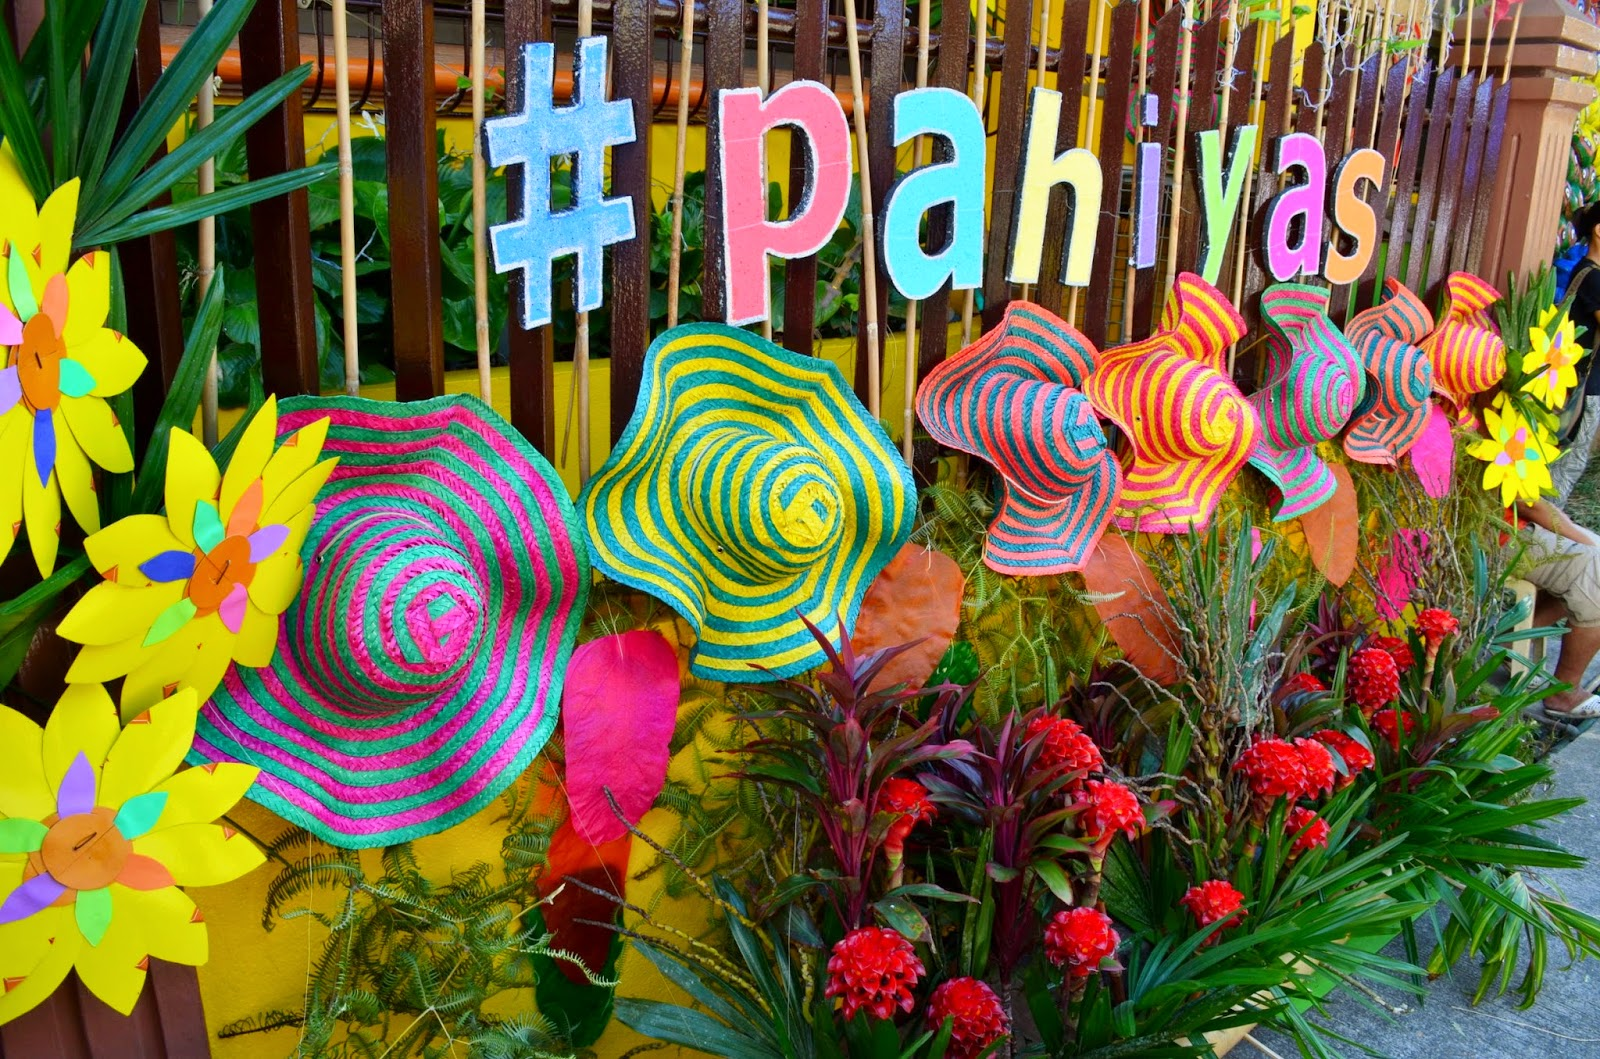 Our Wanderful Journey The Colorful Festival Of Pahiyas